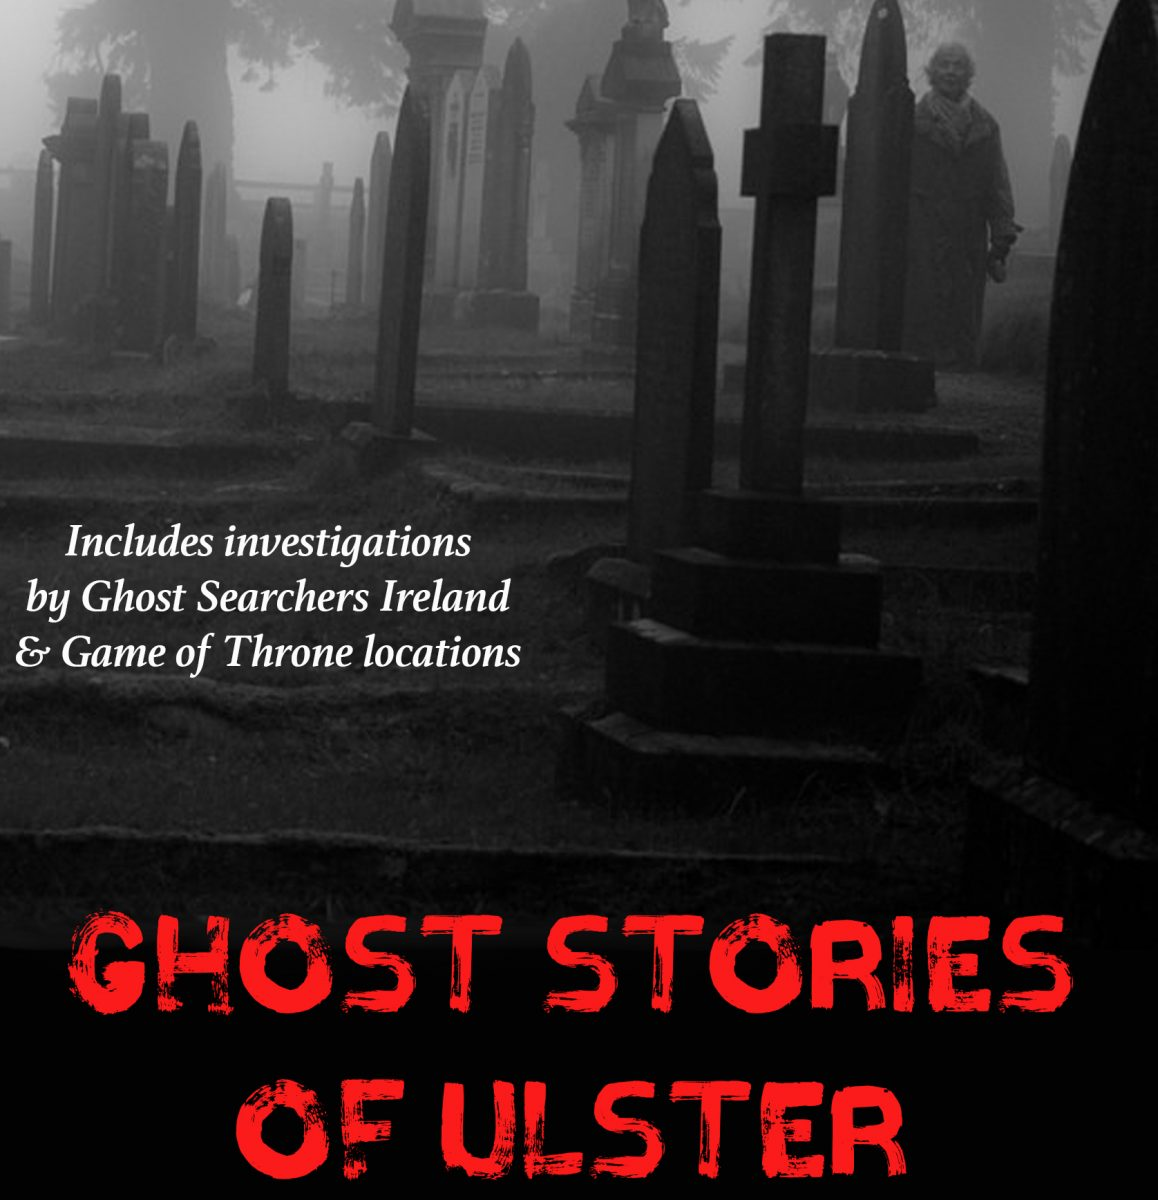 Fang-tastic \'Ghost Stories of Ulster\' boook to be launched this week ...